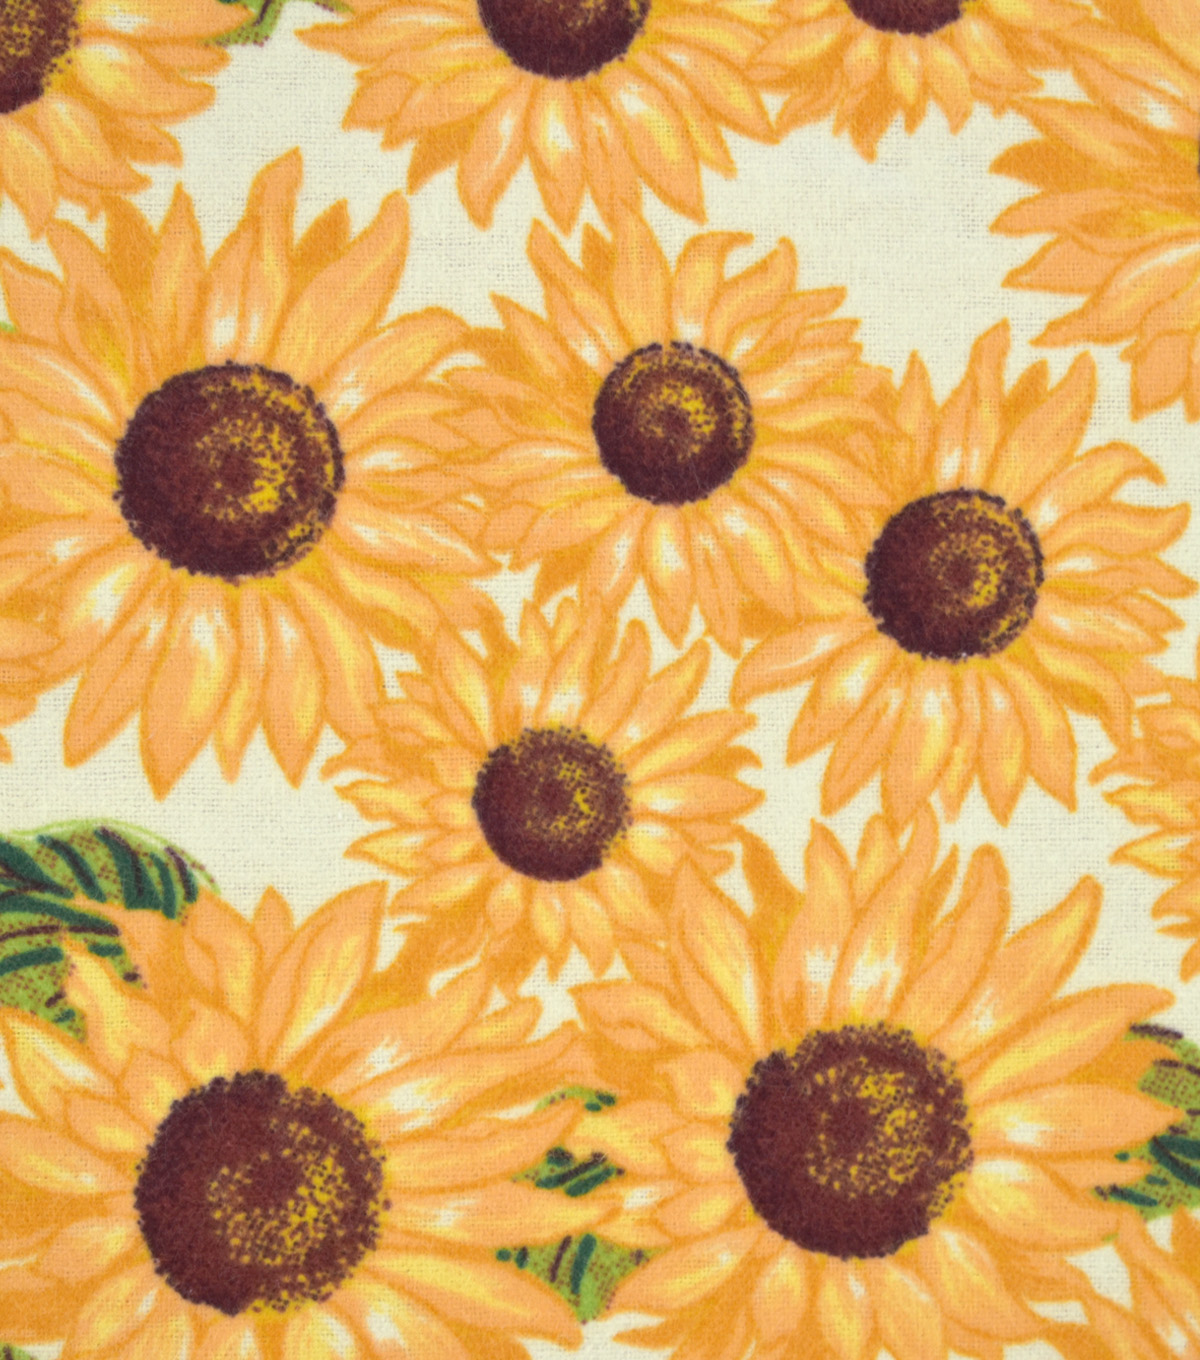 snuggle flannel fabric sunflowers joann